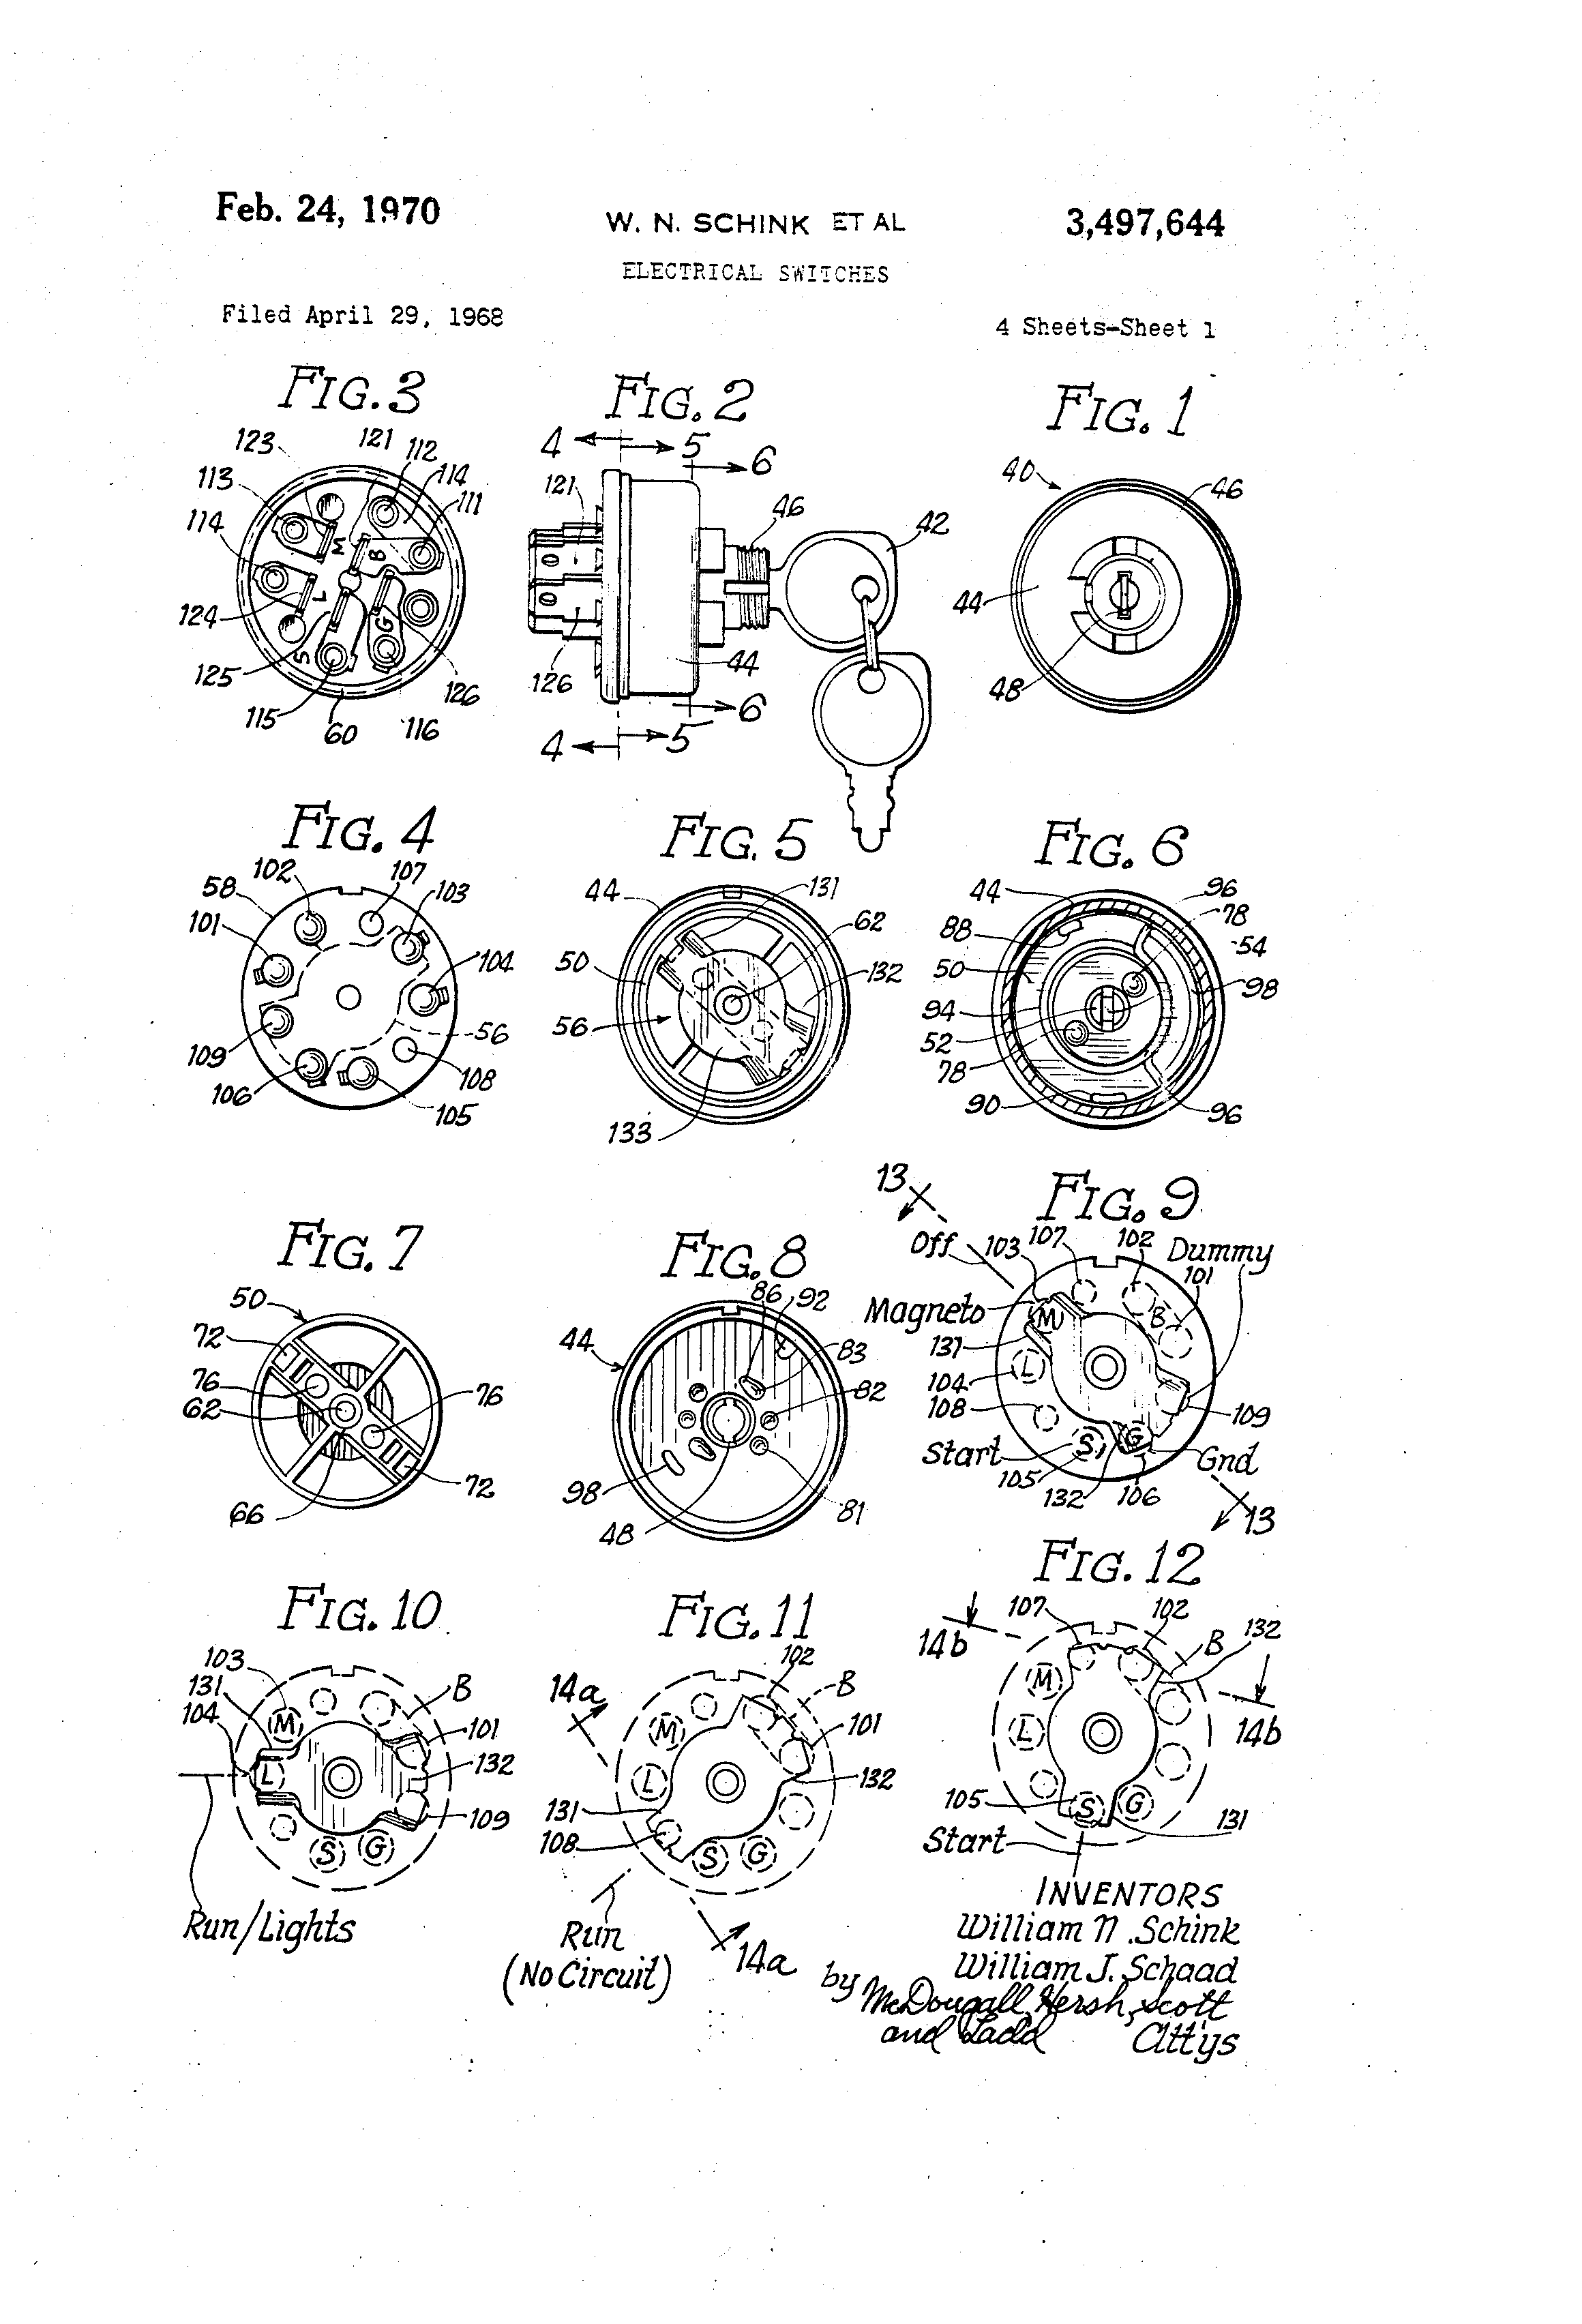 Delta Systems Ignition Switch Wiring Diagram 44 Chrysler Us3497644 0 Patent Electrical Switches Google Patents At Cita